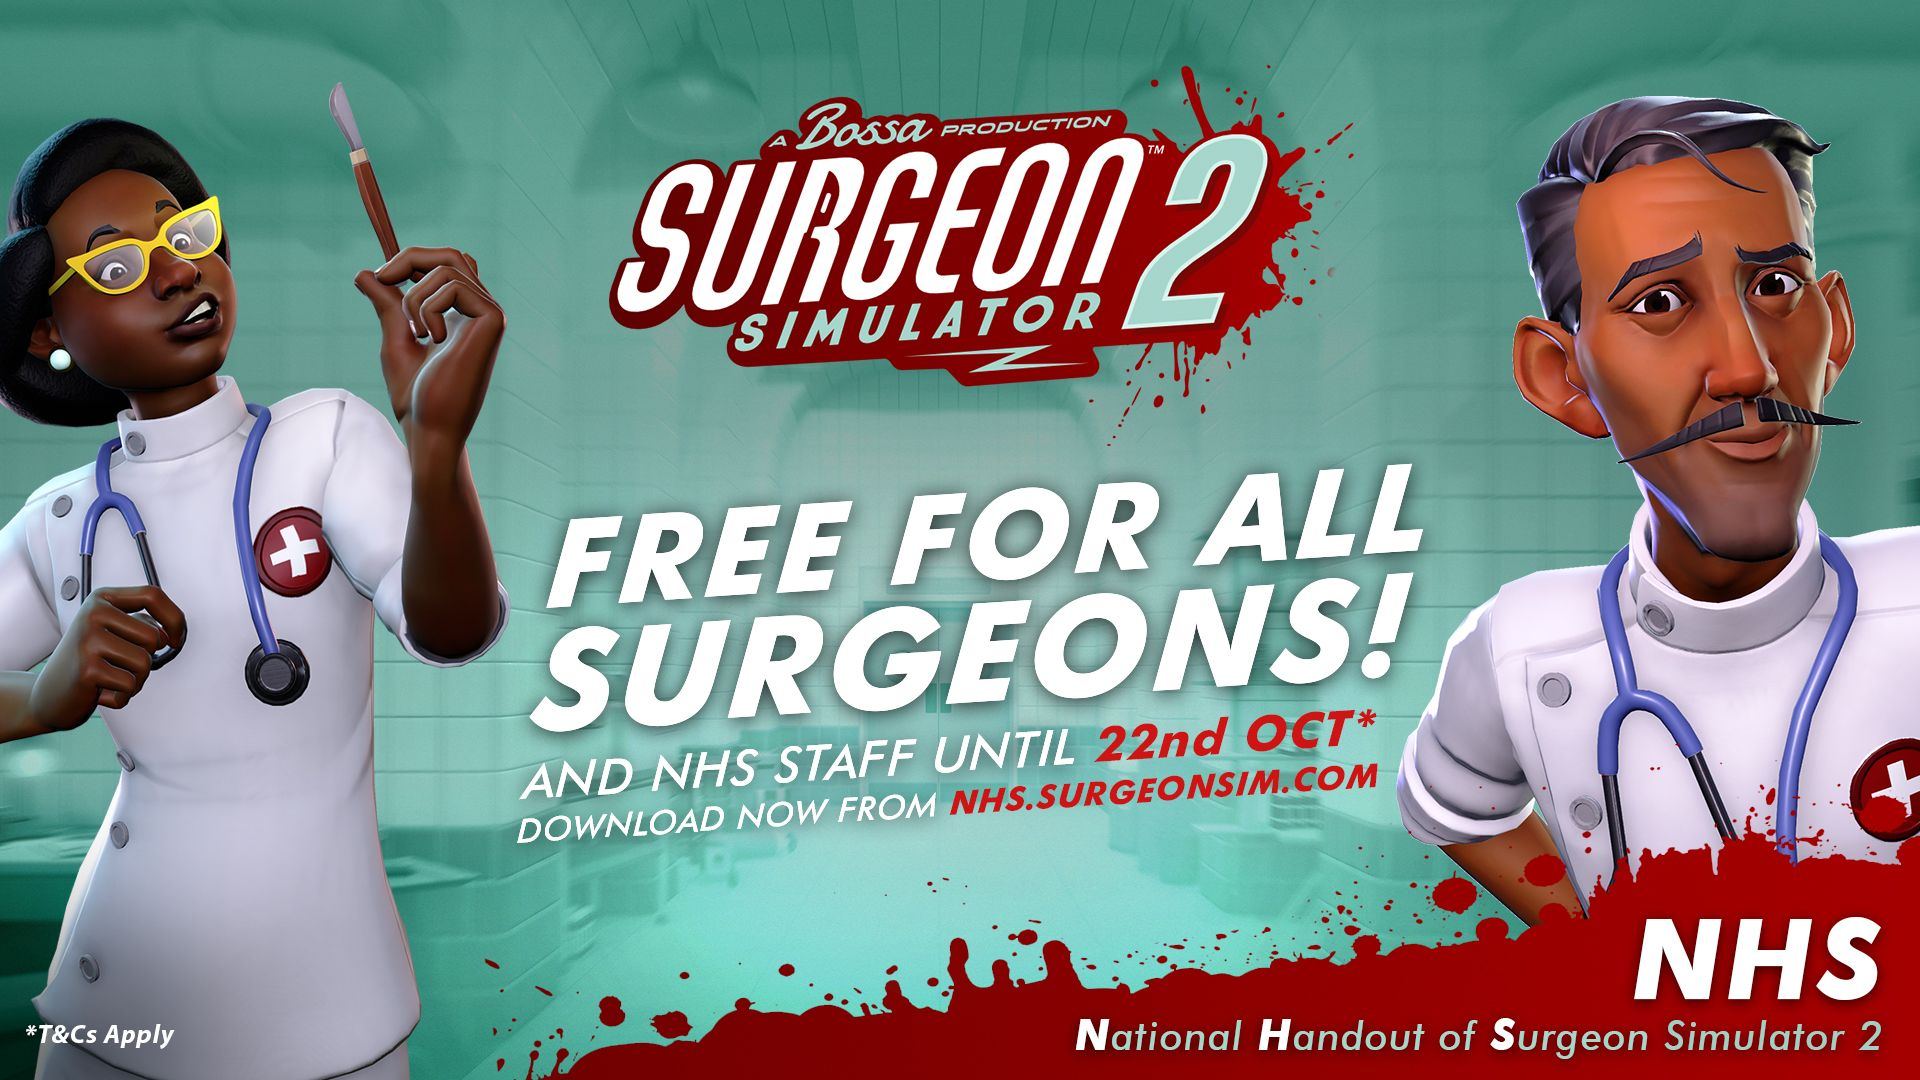 Surgeon Sim 2 is Now Free For Real Surgeons!